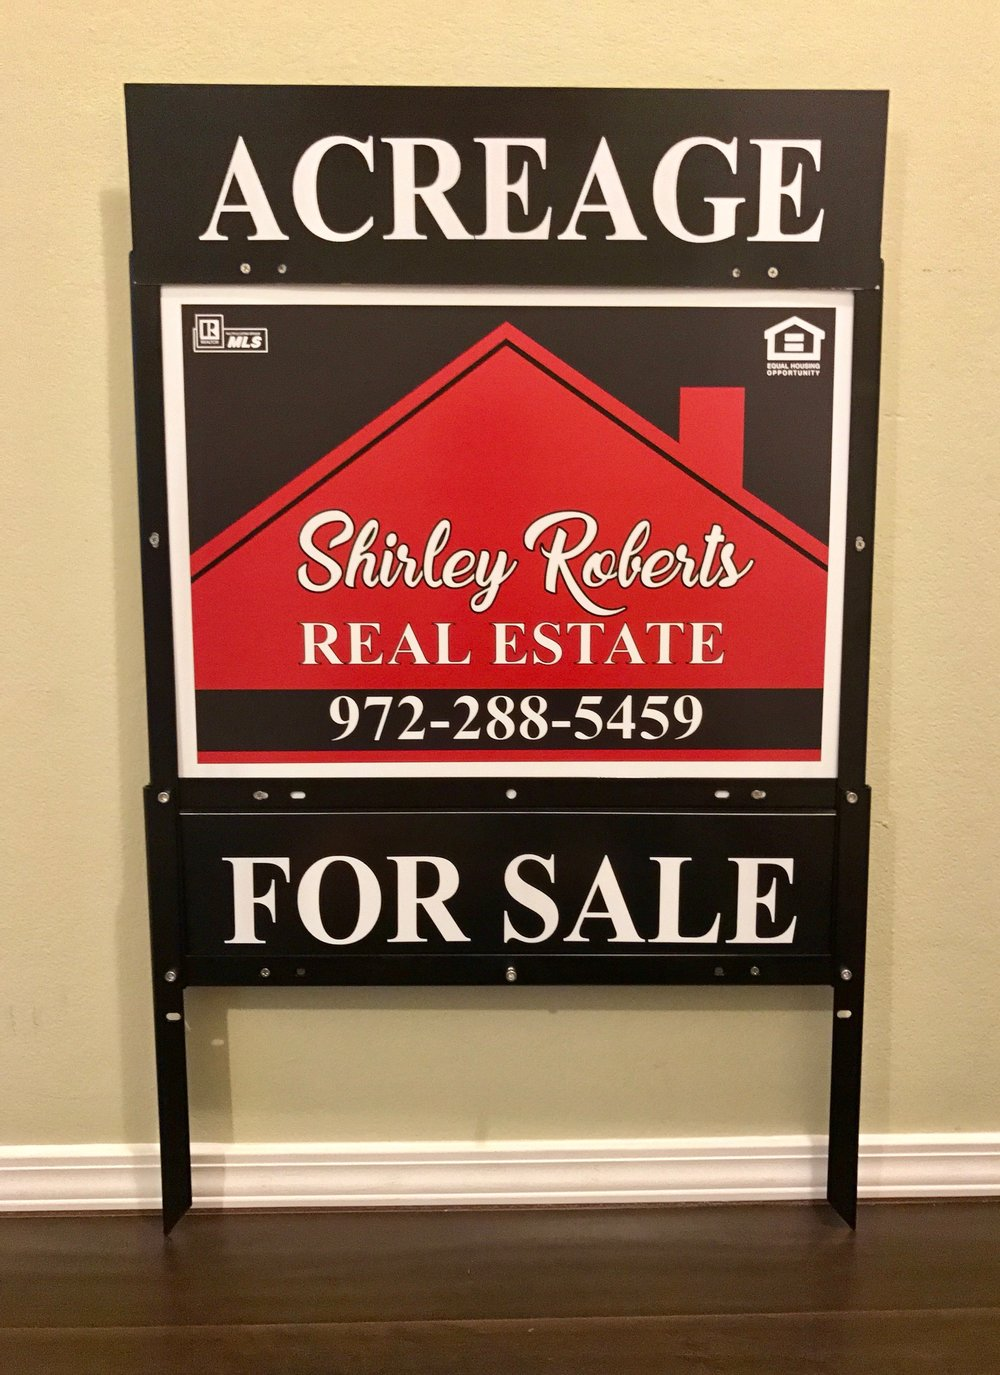 Shirley Roberts Real Estate.jpg